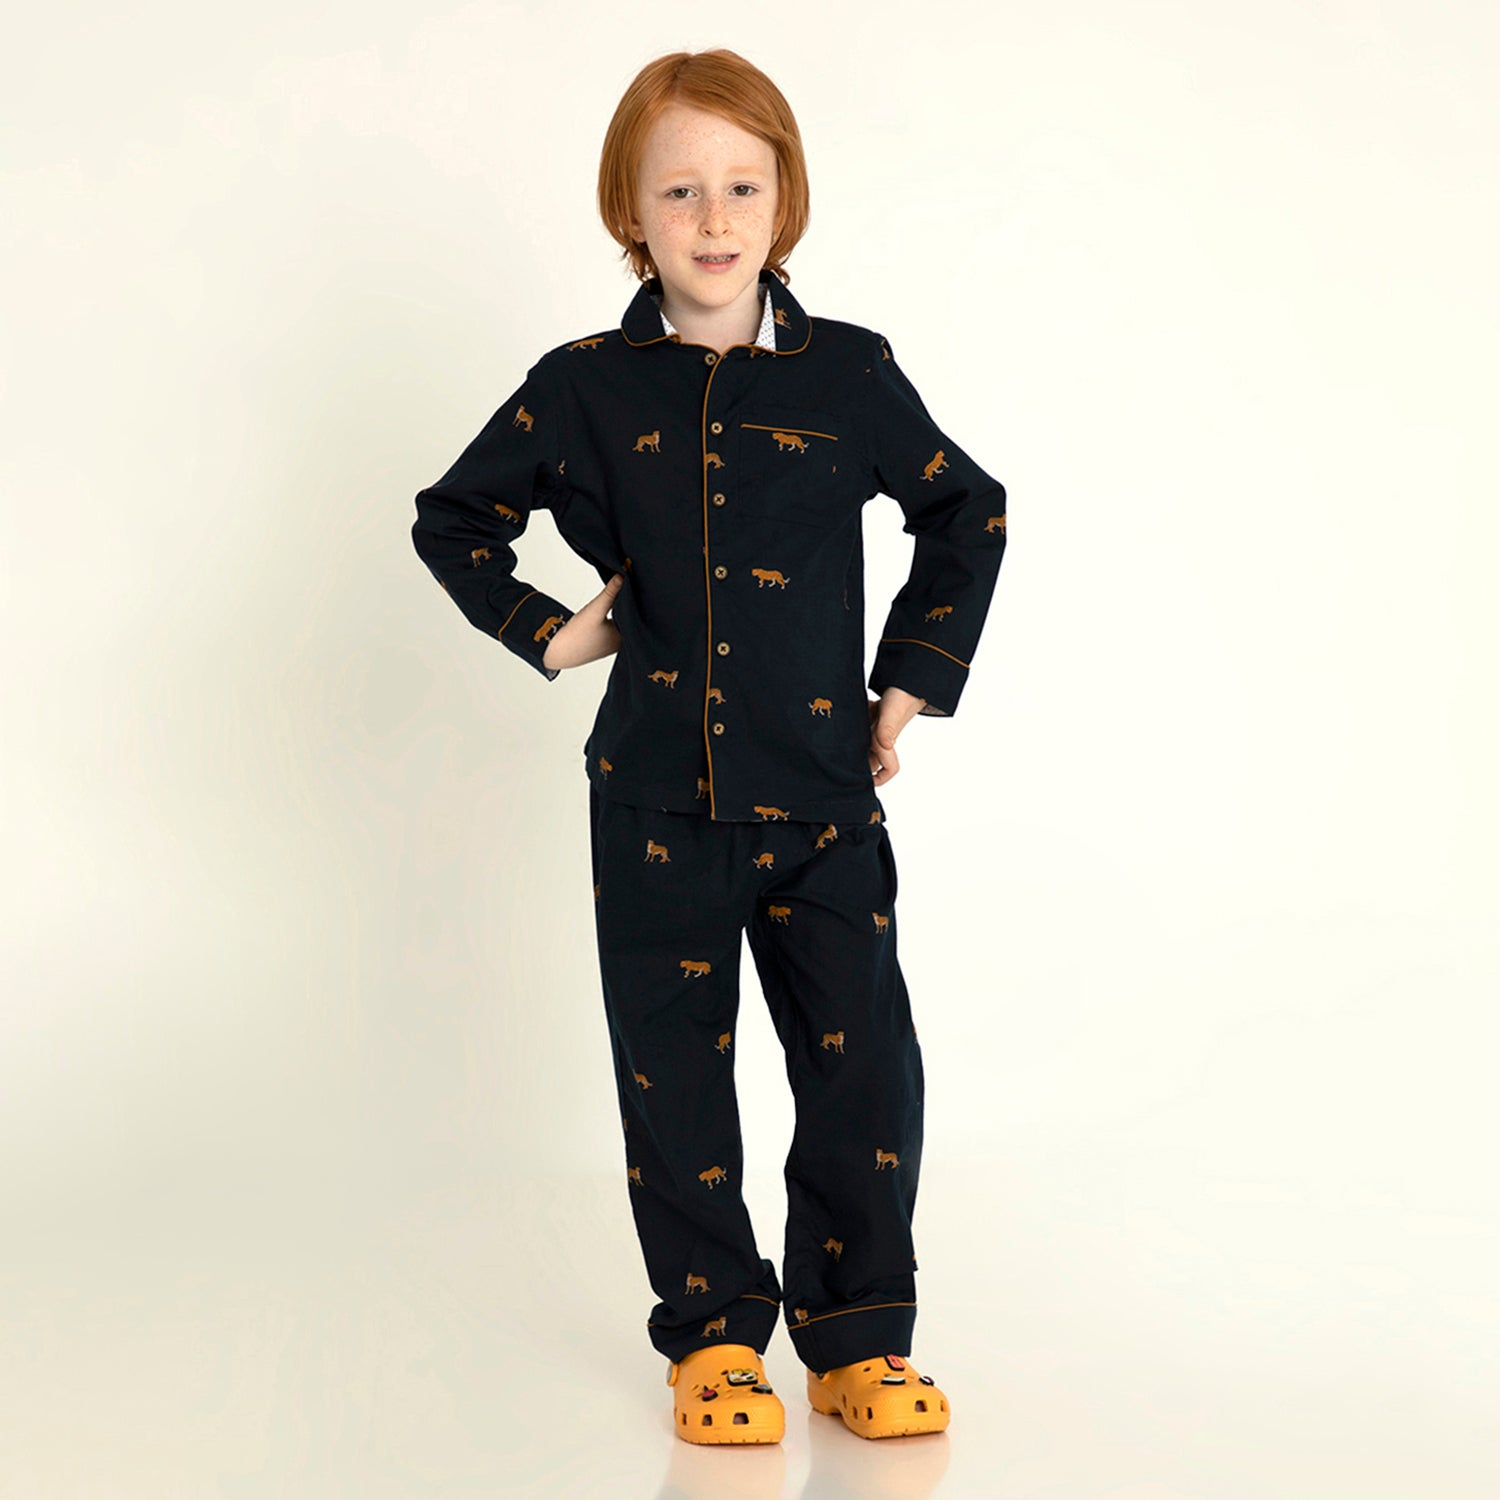 Cherry-Crumble-Kids-Full-Sleeve-Regular-Sleeve-Collared-Printed-Shirt-&-Pyjama-Nightsuit